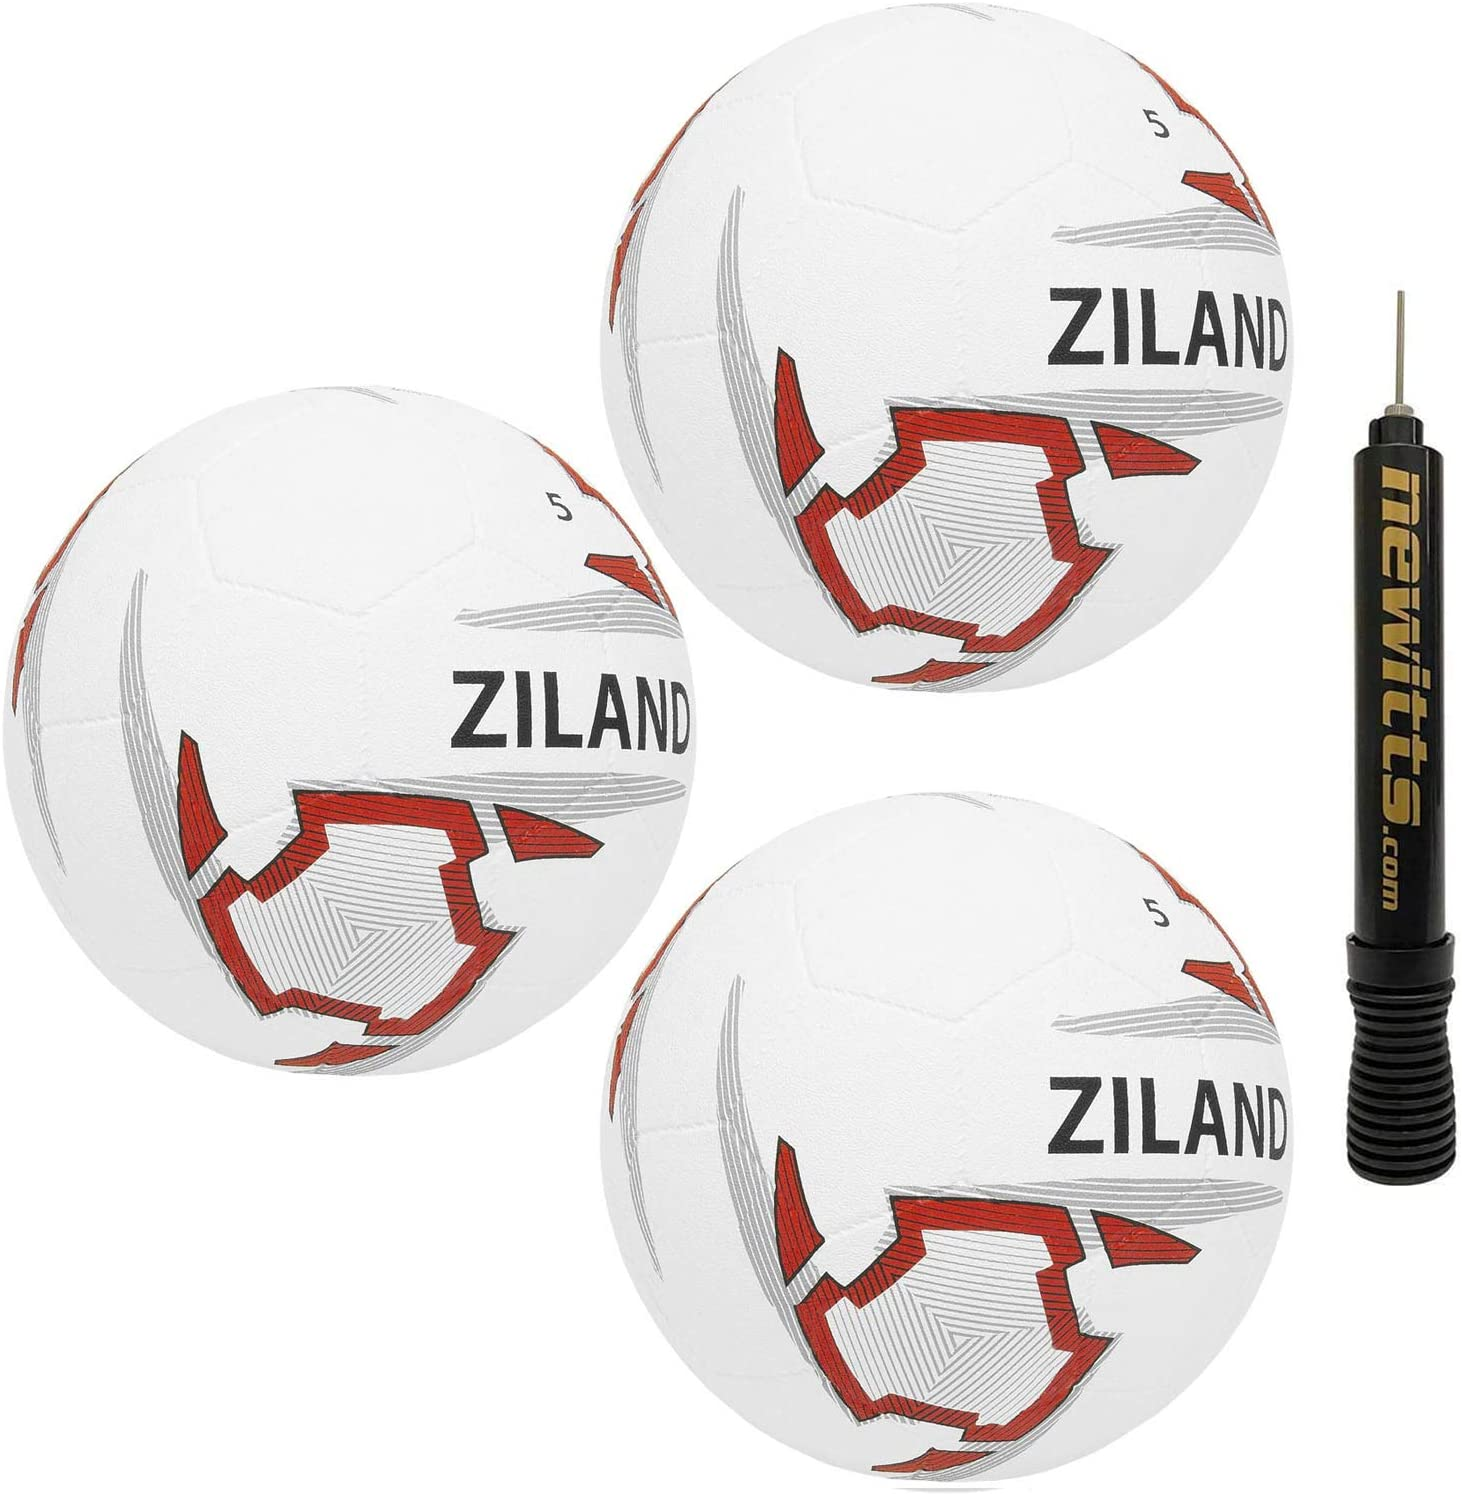 Pack of 3 Ziland Moulded Footballs /• Includes Ball Pump /• 32 panel dimple moulded rubber ball with exceptional durability on all playing surfaces SELECT YOUR SIZE